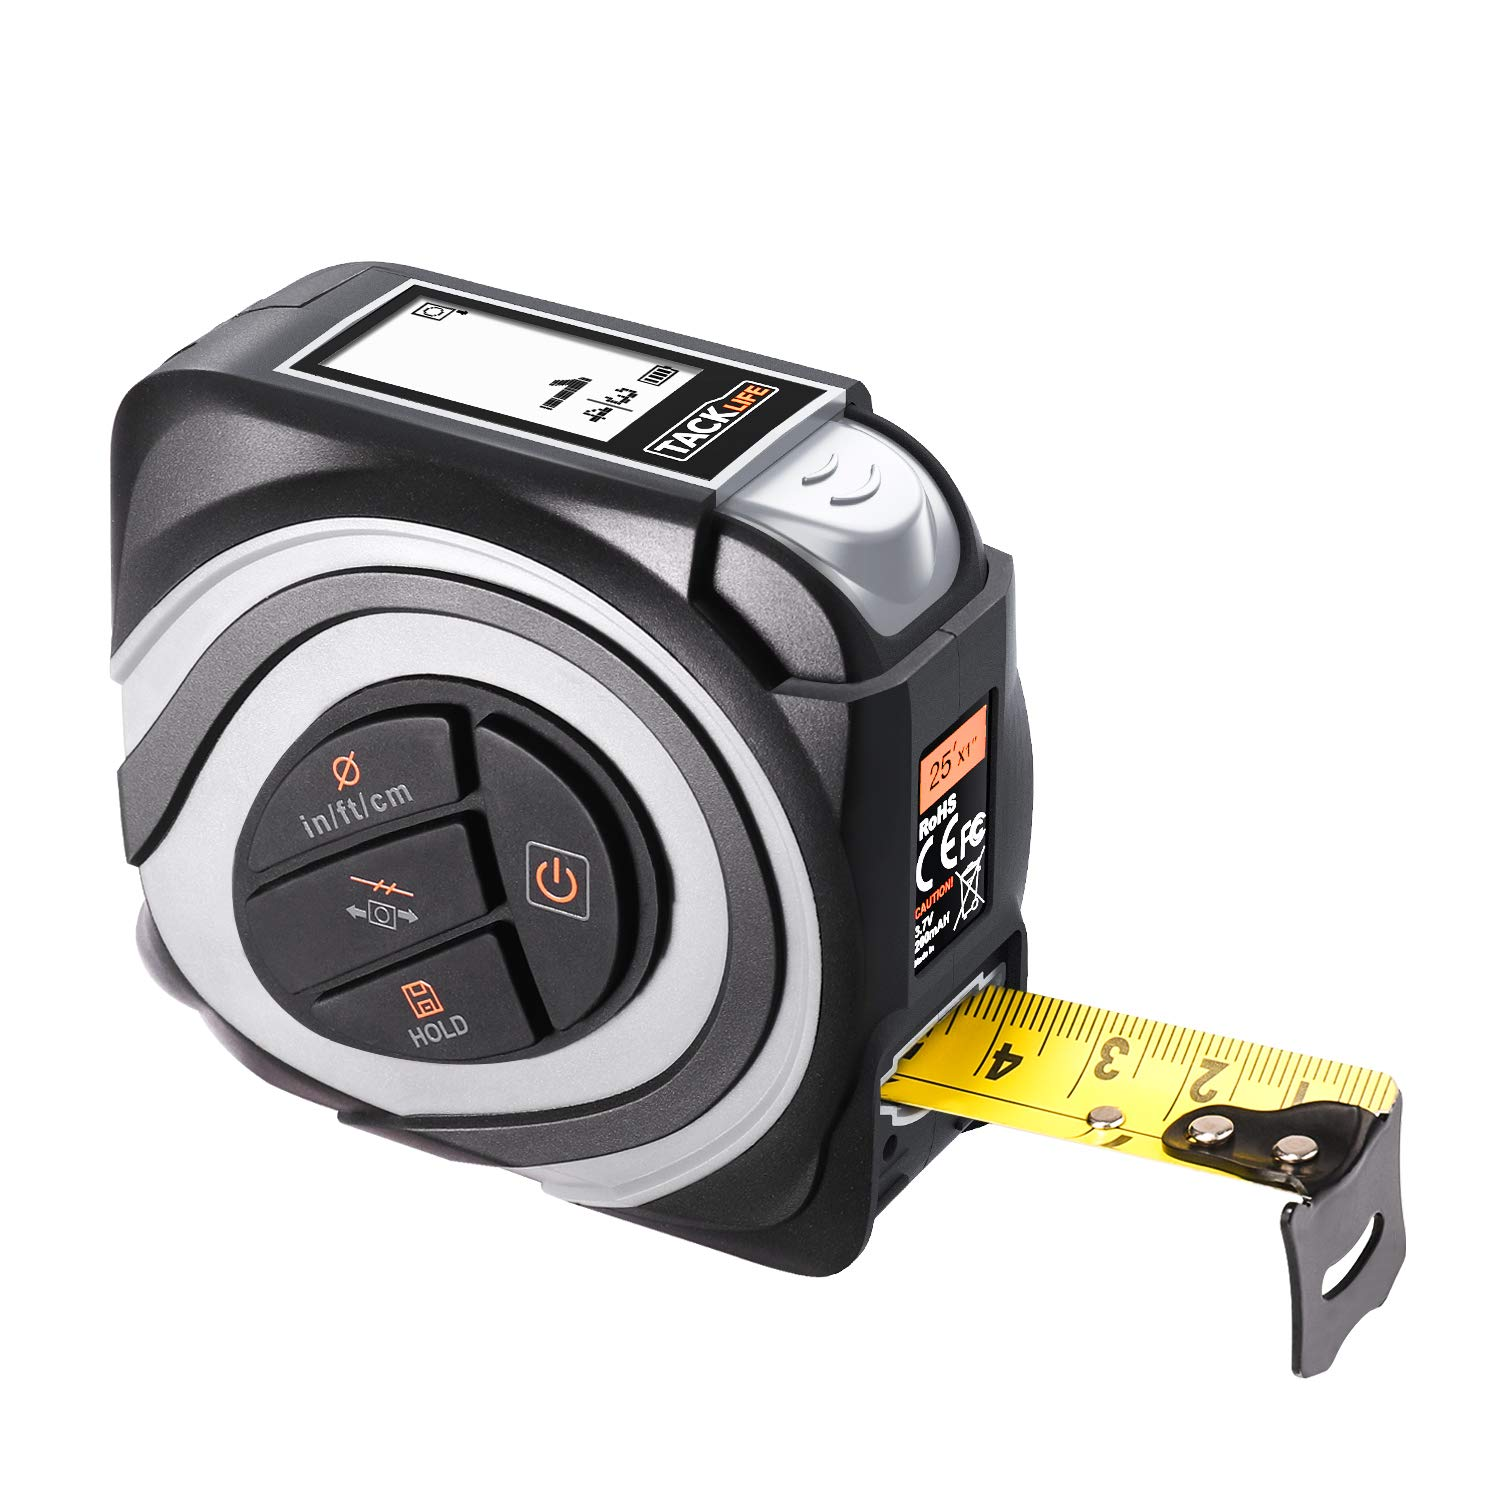 Digital Tape Measure 16Ft M/In/Ft Rechargeable with Large Backlit LCD, Auto-lock, 10 Data Store, Rezero Button, Recalibration, Relative measurement, USB Charging Cable Included - TACKLIFE MDT01